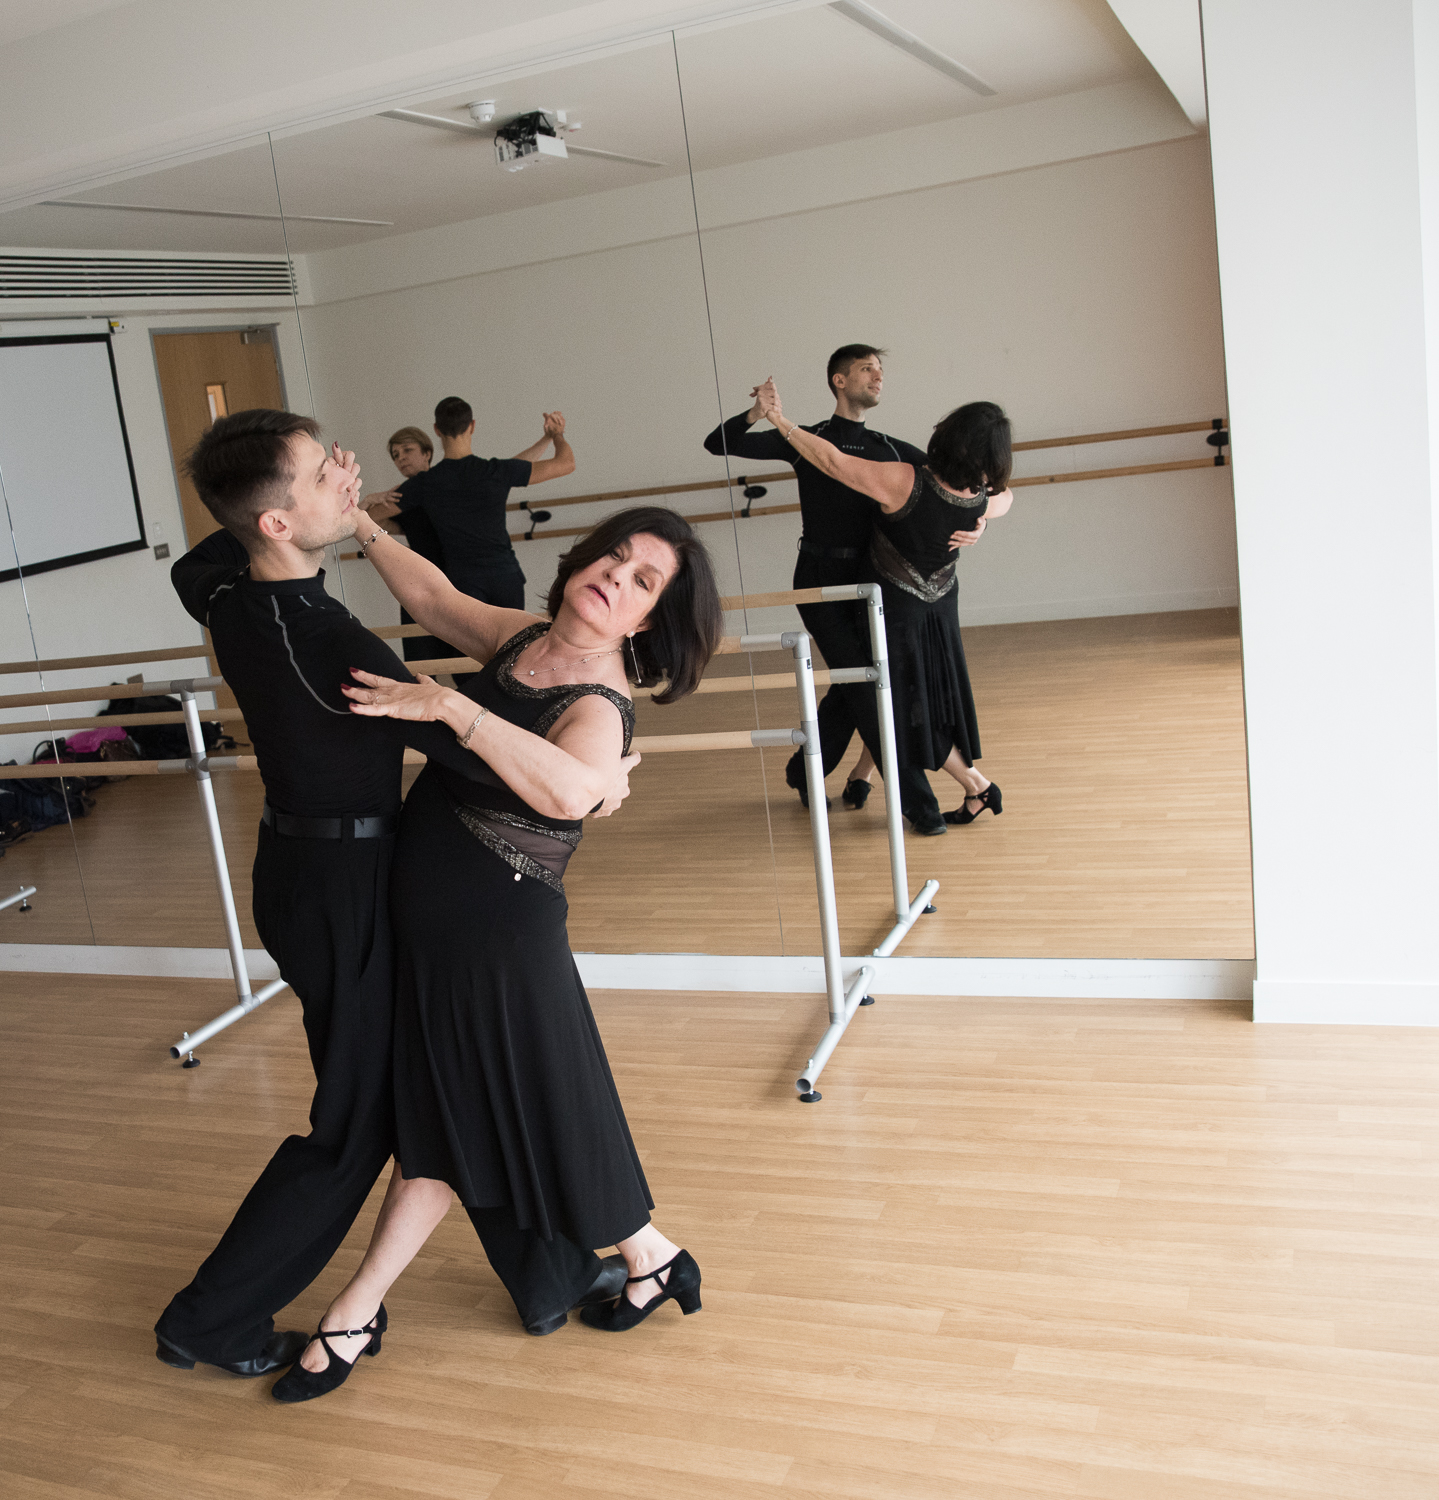 click to find out more about our private dance lessons